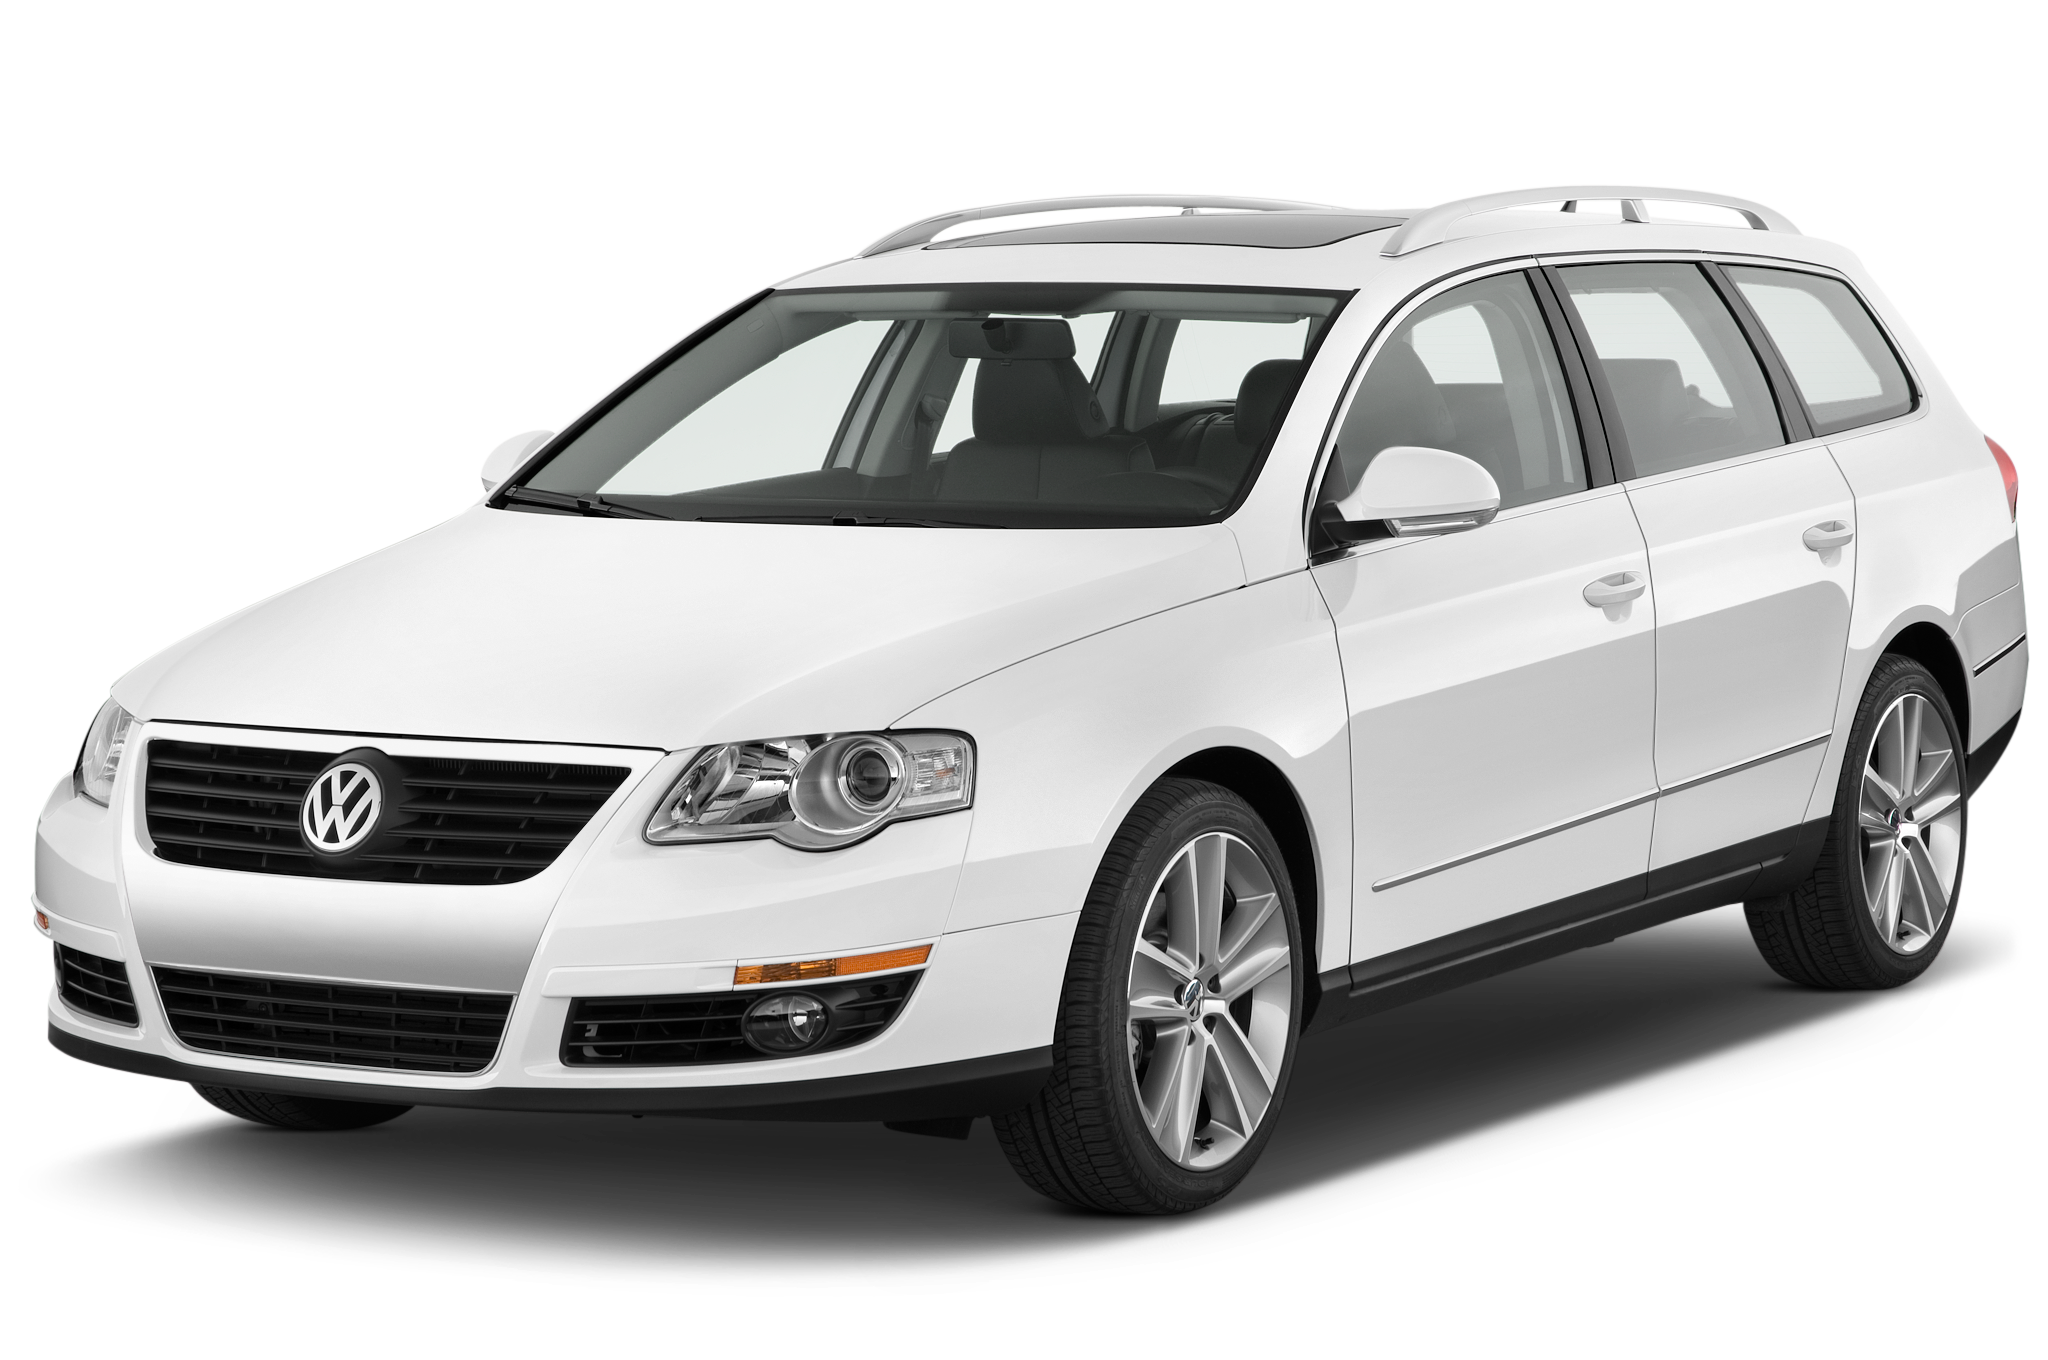 2012 volkswagen passat priced from 20 765. Black Bedroom Furniture Sets. Home Design Ideas